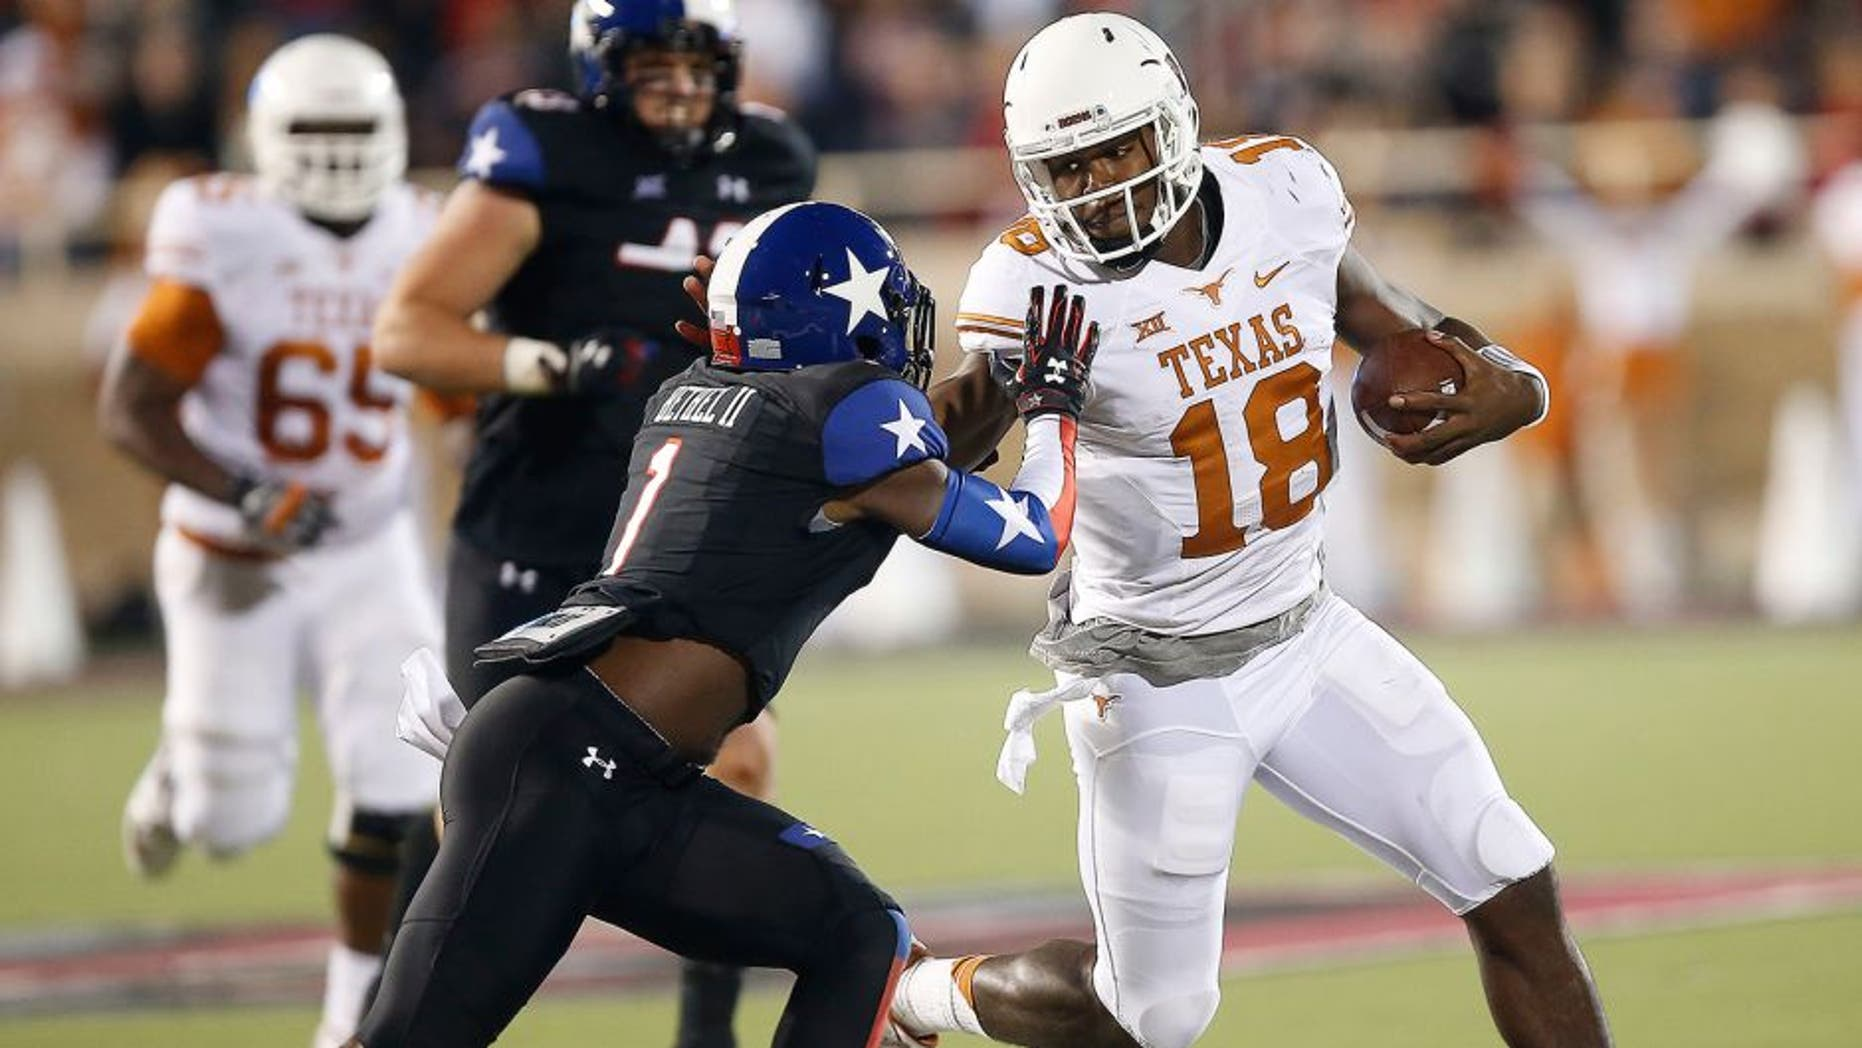 Texas' Tyrone Swoopes runs against Texas Tech's Nigel Bethel II during an NCAA college football game in Lubbock, Texas, Saturday, Nov. 1, 2014. (AP Photo/Lubbock Avalanche-Journal, Tori Eichberger)